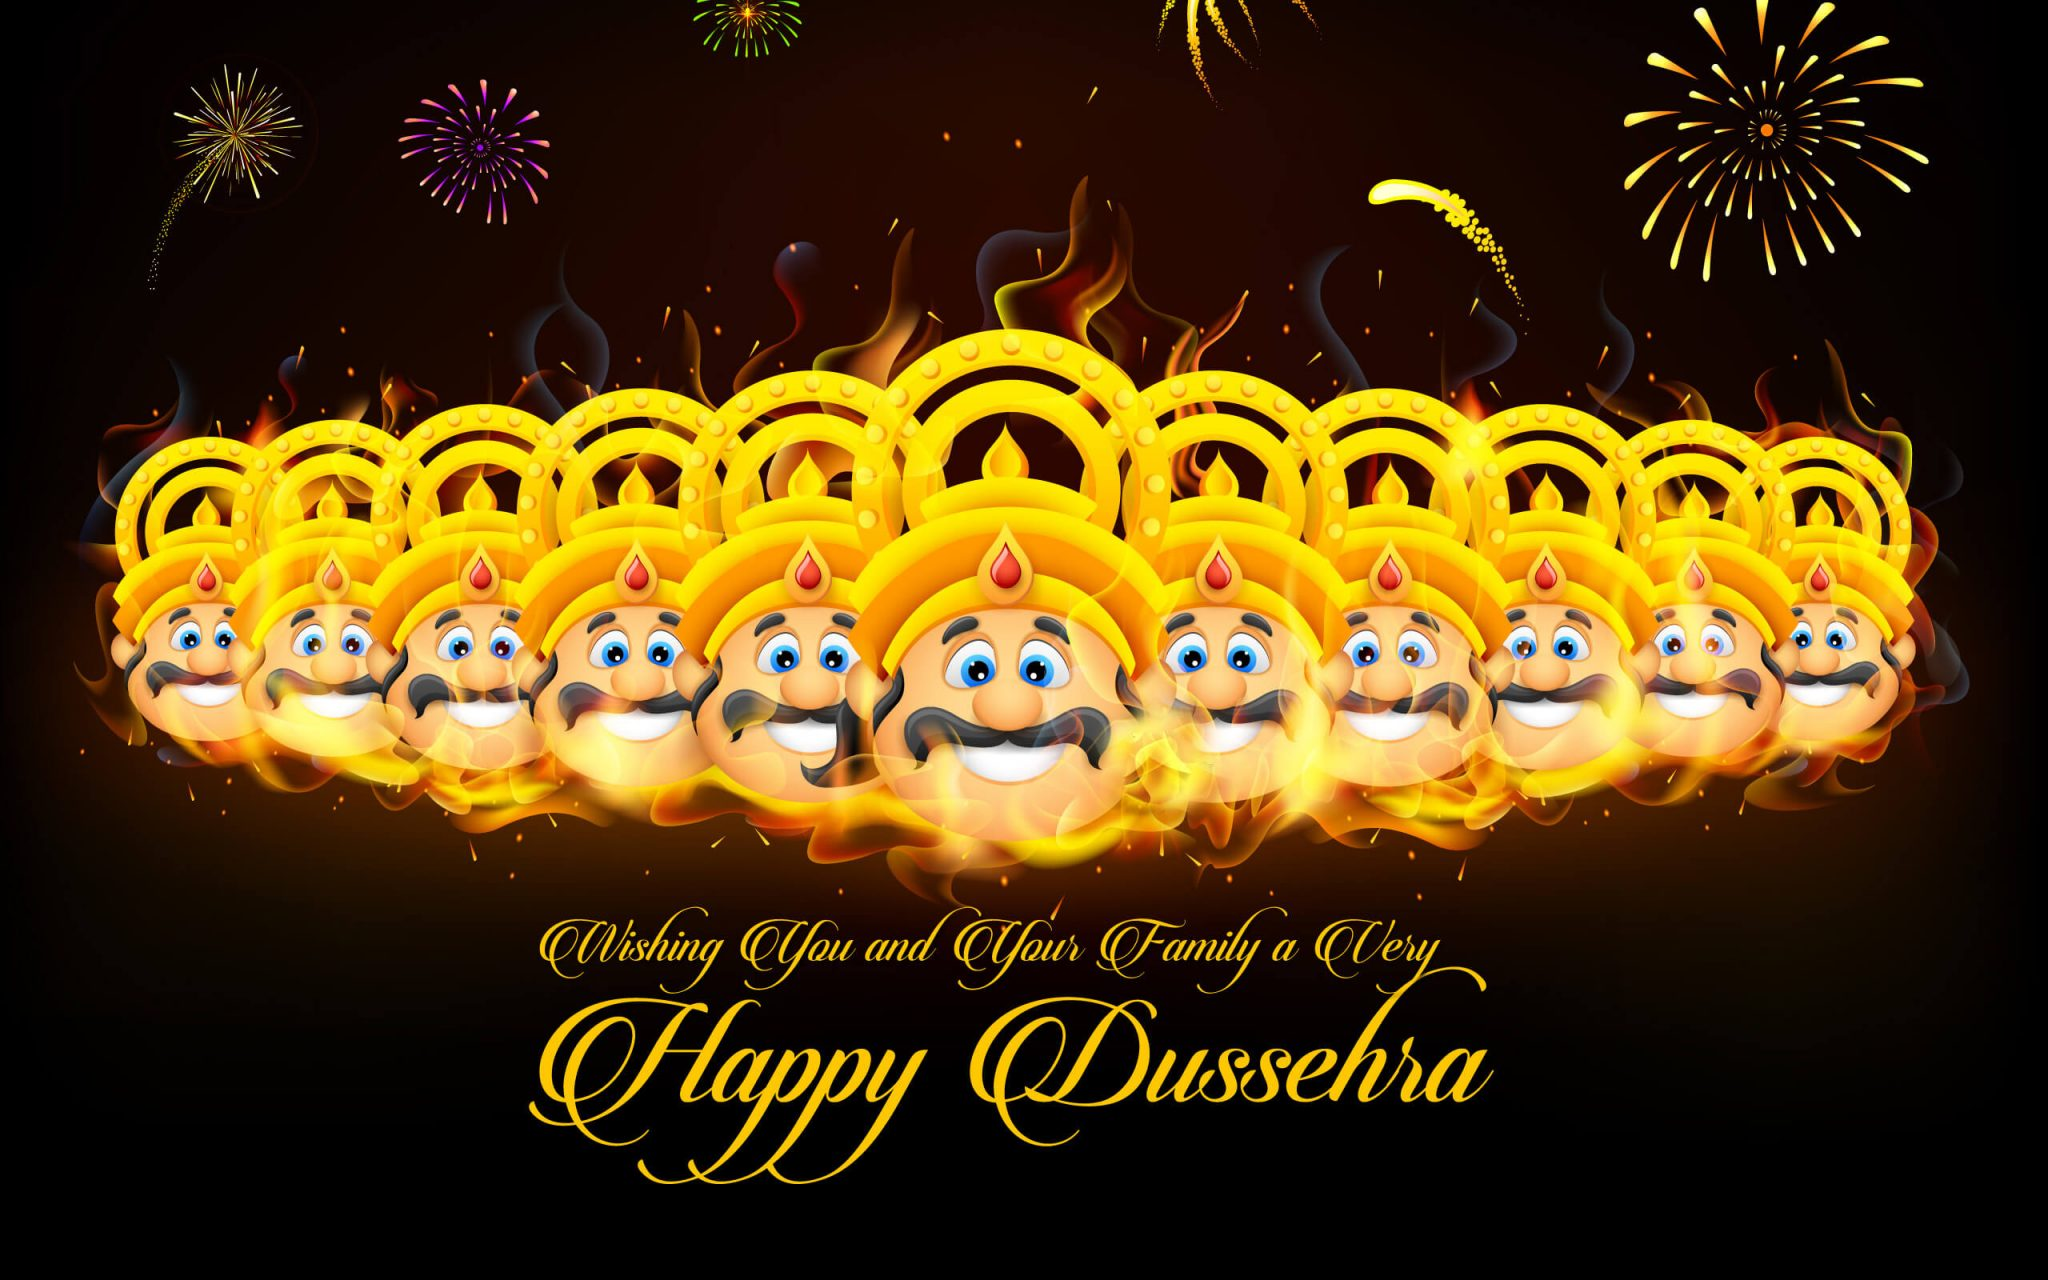 Happy Dussehra Images, Pictures, Wallpapers to celebrate ...